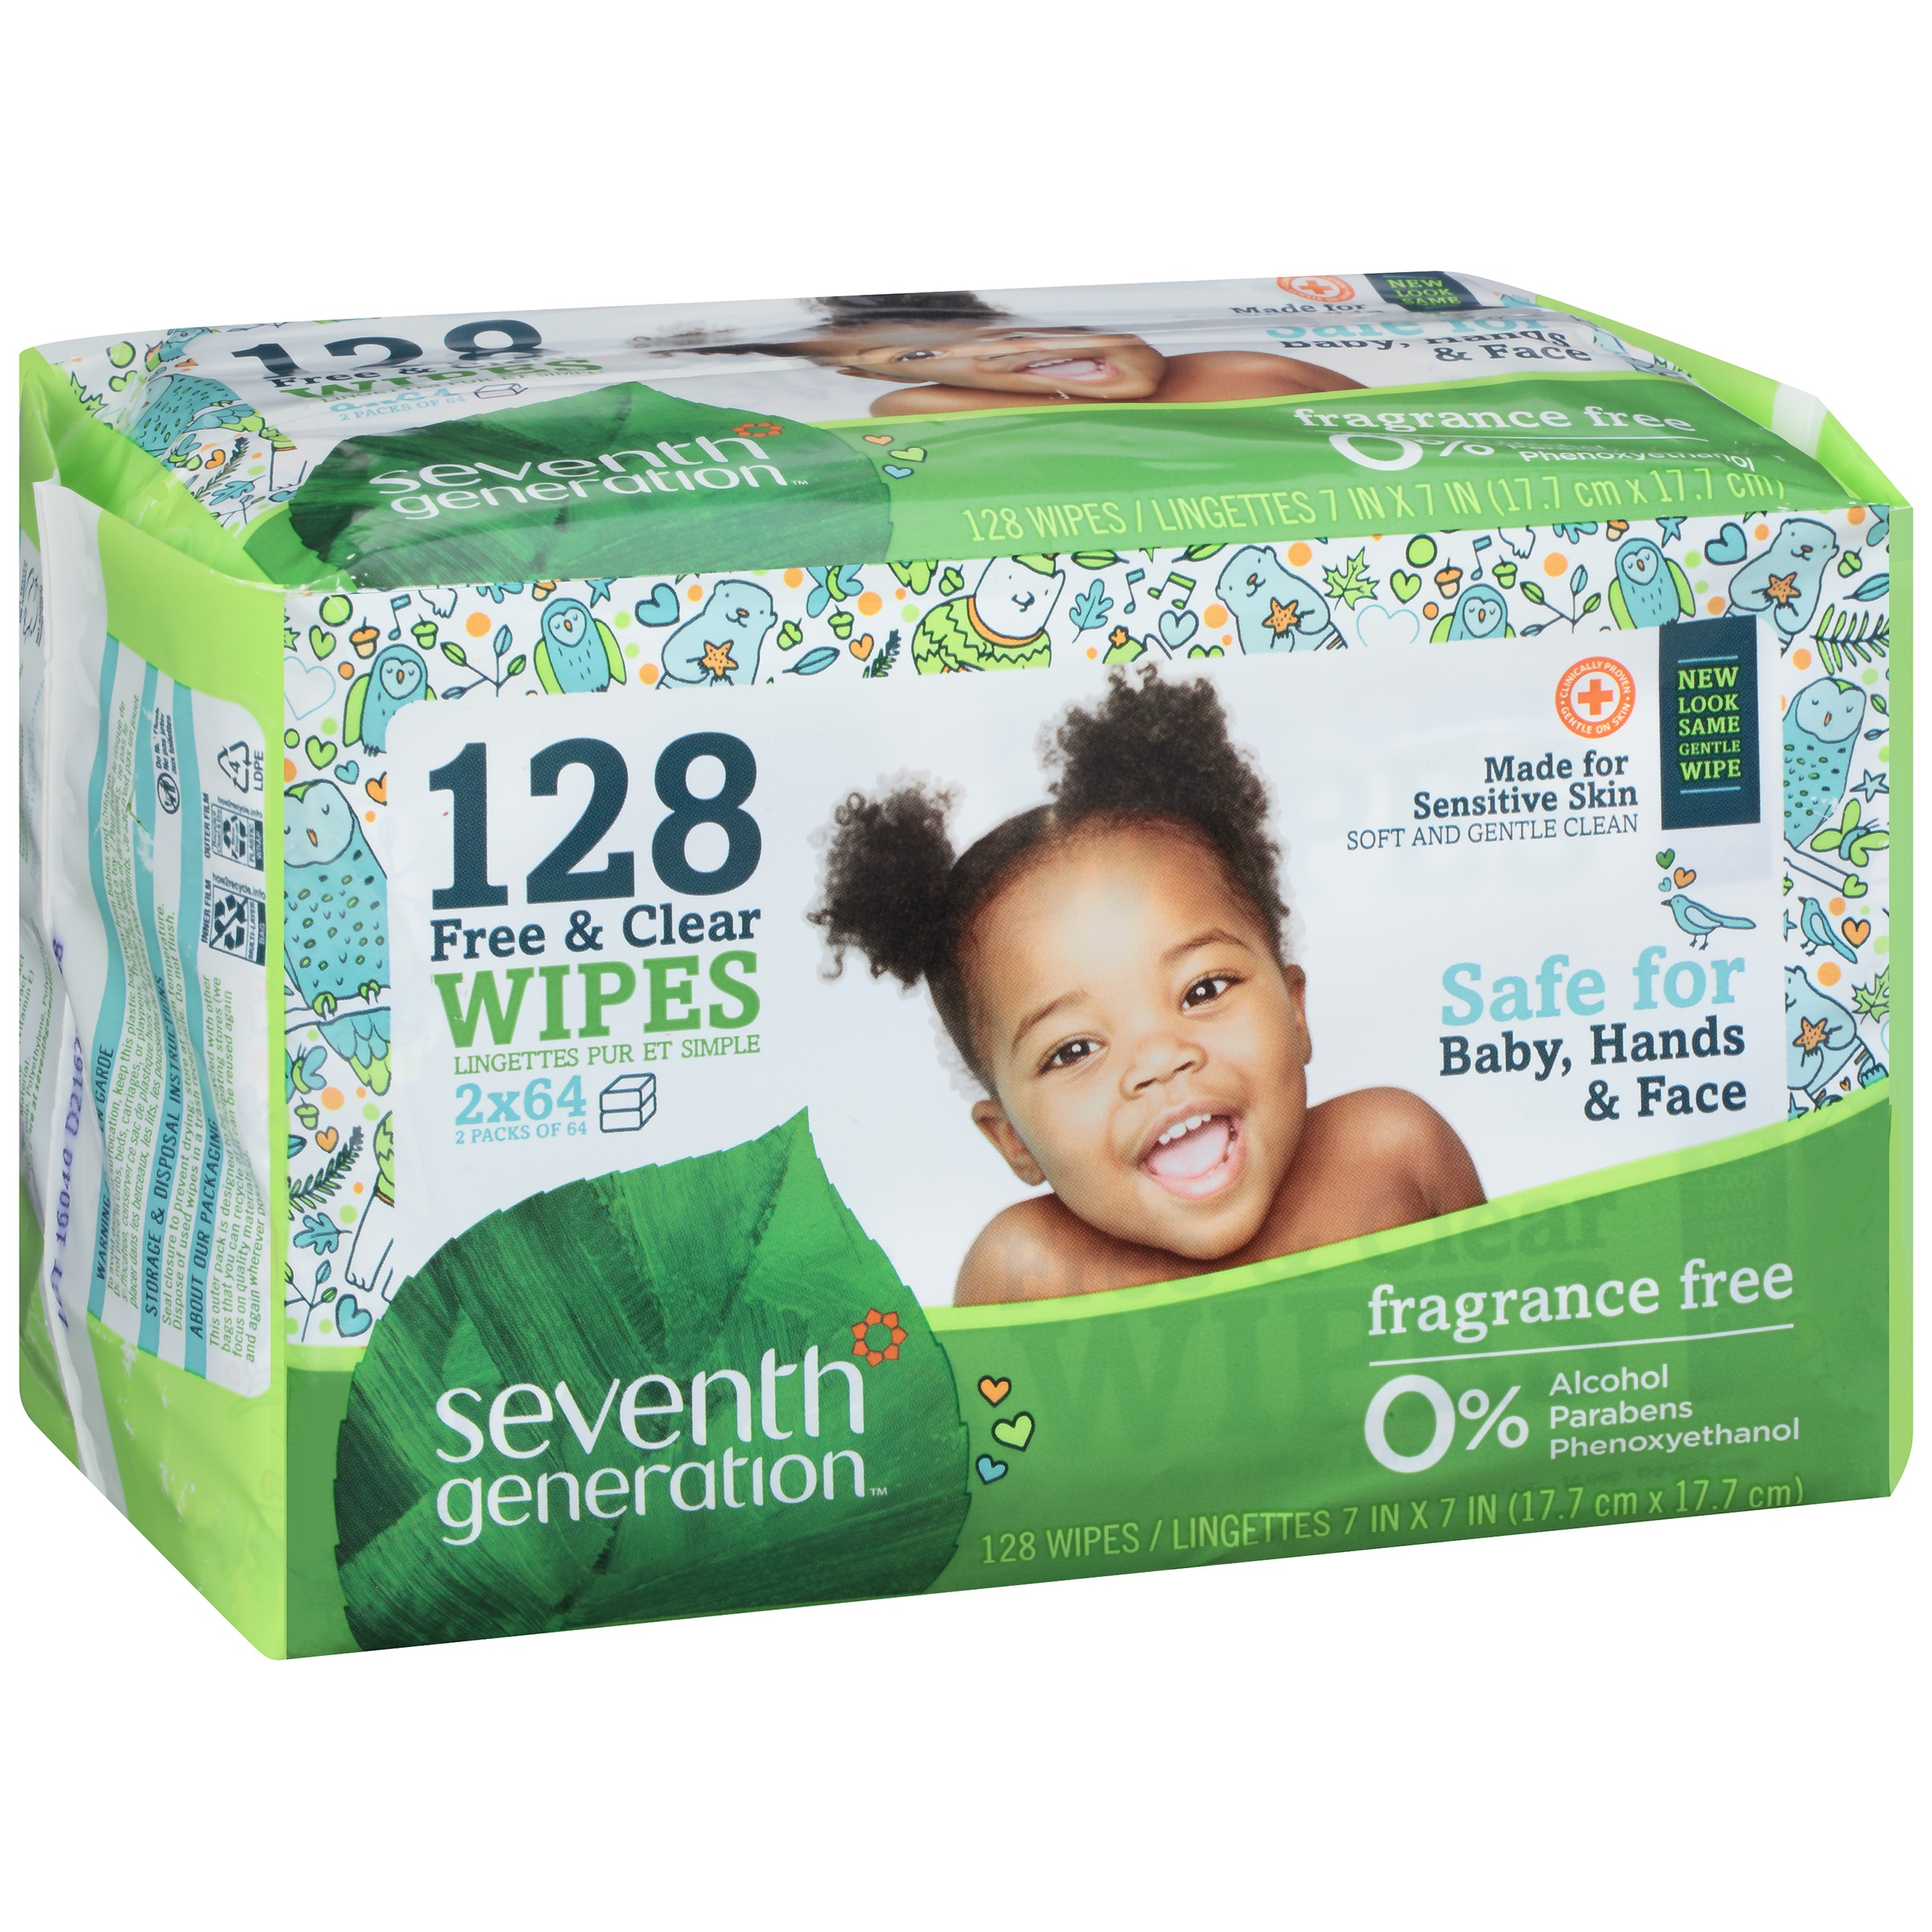 Seventh Generation Baby Free & Clear Wipes Unscented 128 CT by Seventh Generation, Inc.